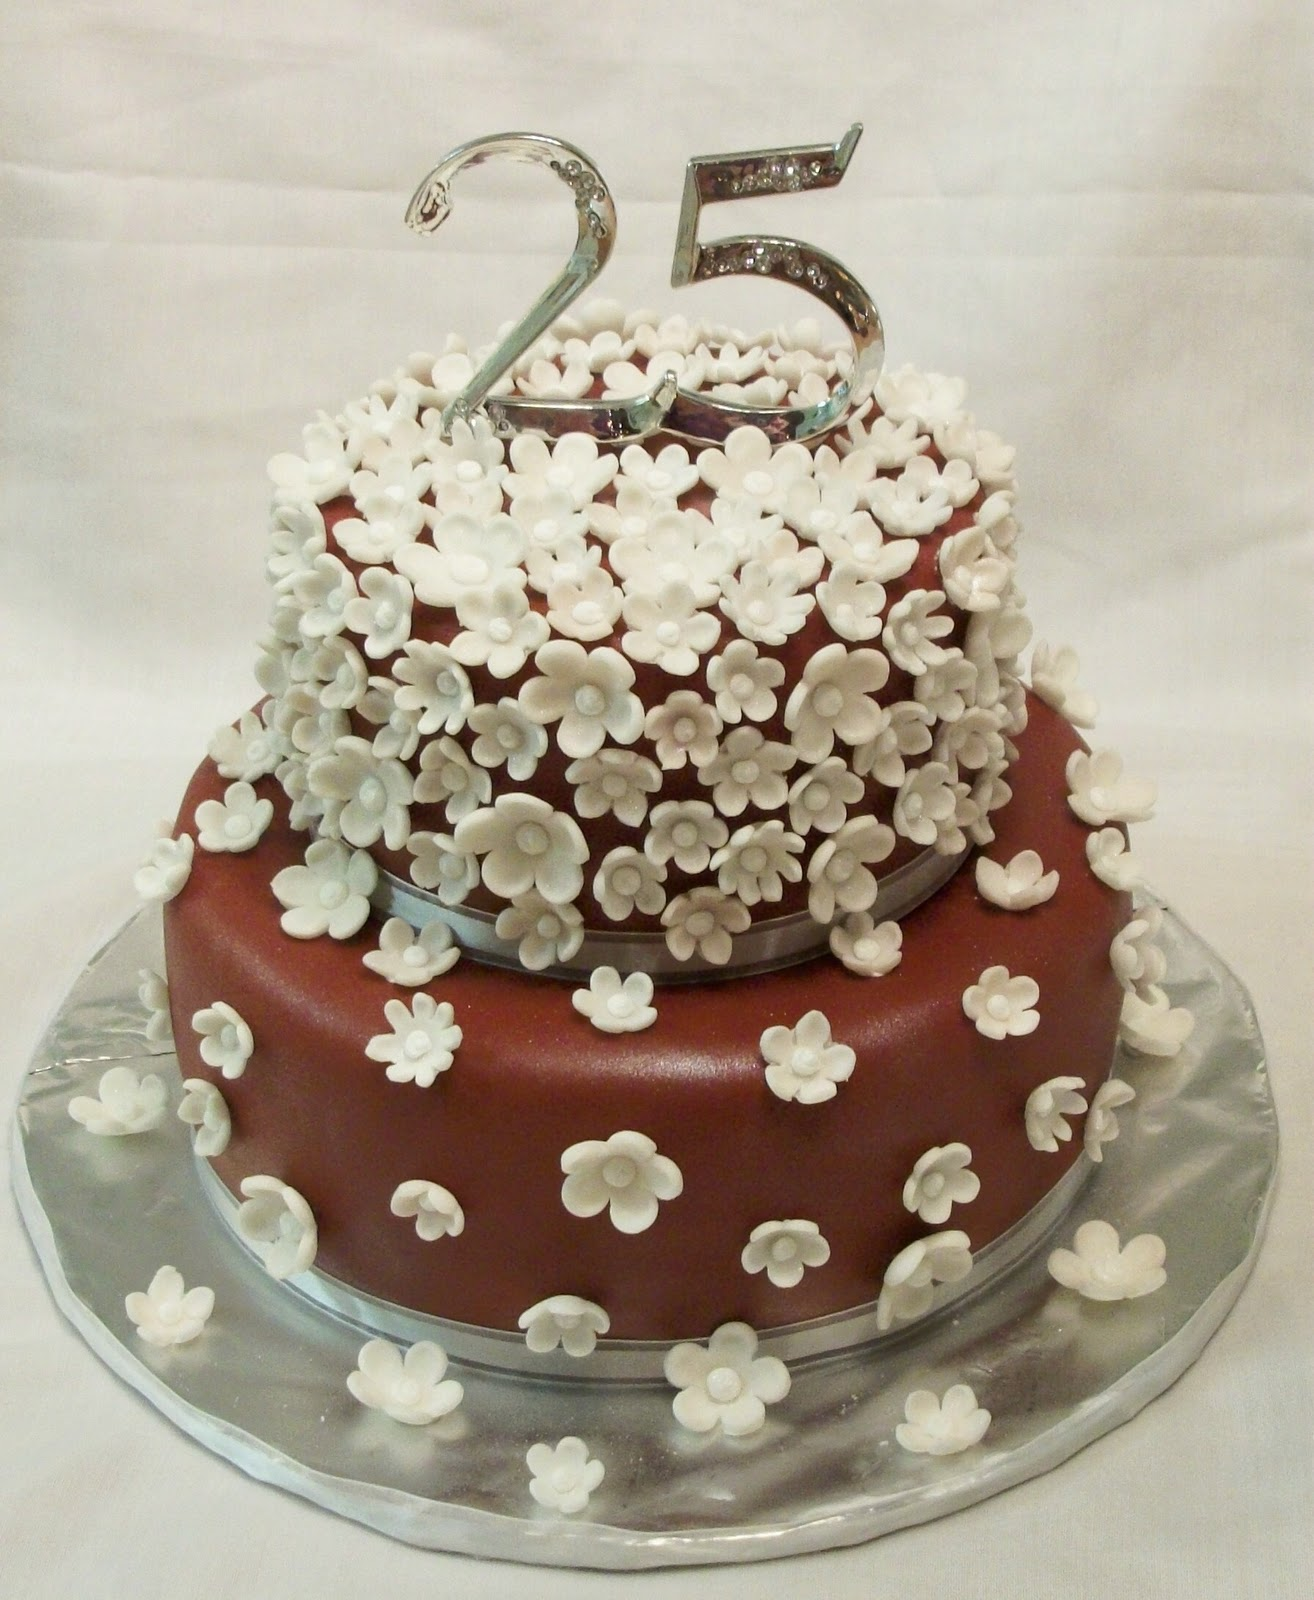 Cake Design For 25th Anniversary : Bellissimo! Specialty Cakes: 25th Anniversary Cake